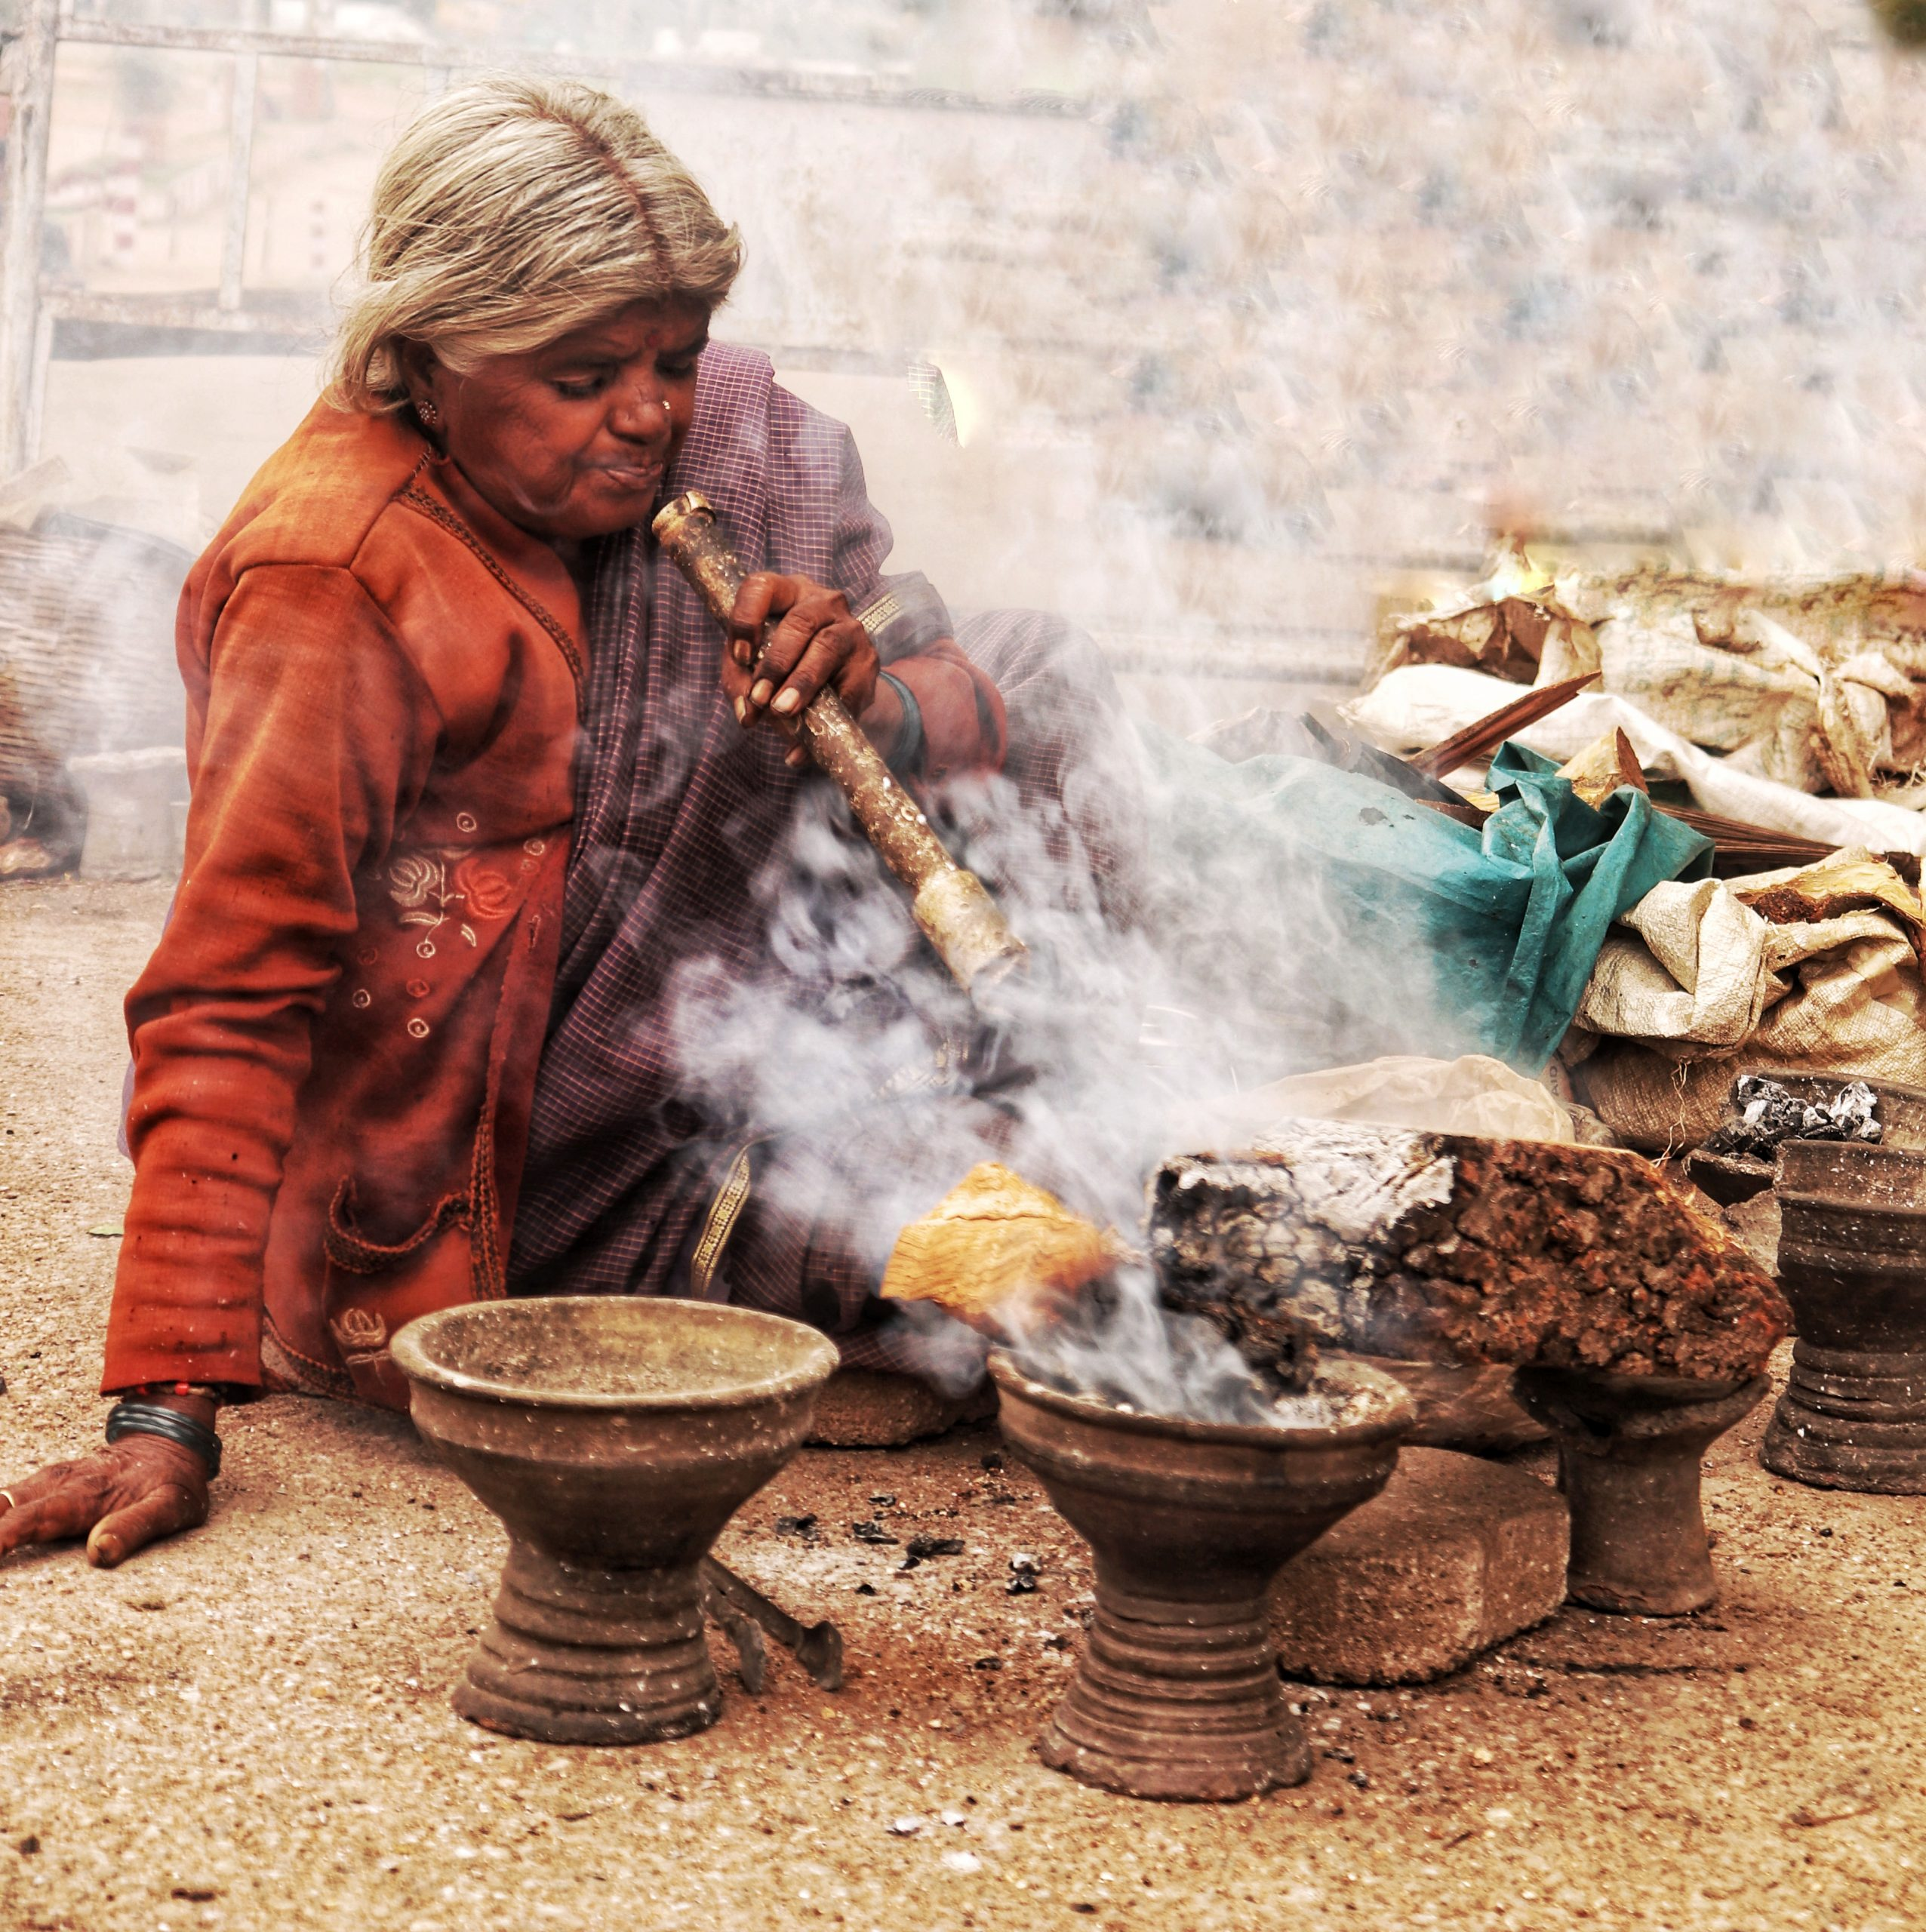 An old woman blowing air with pipe